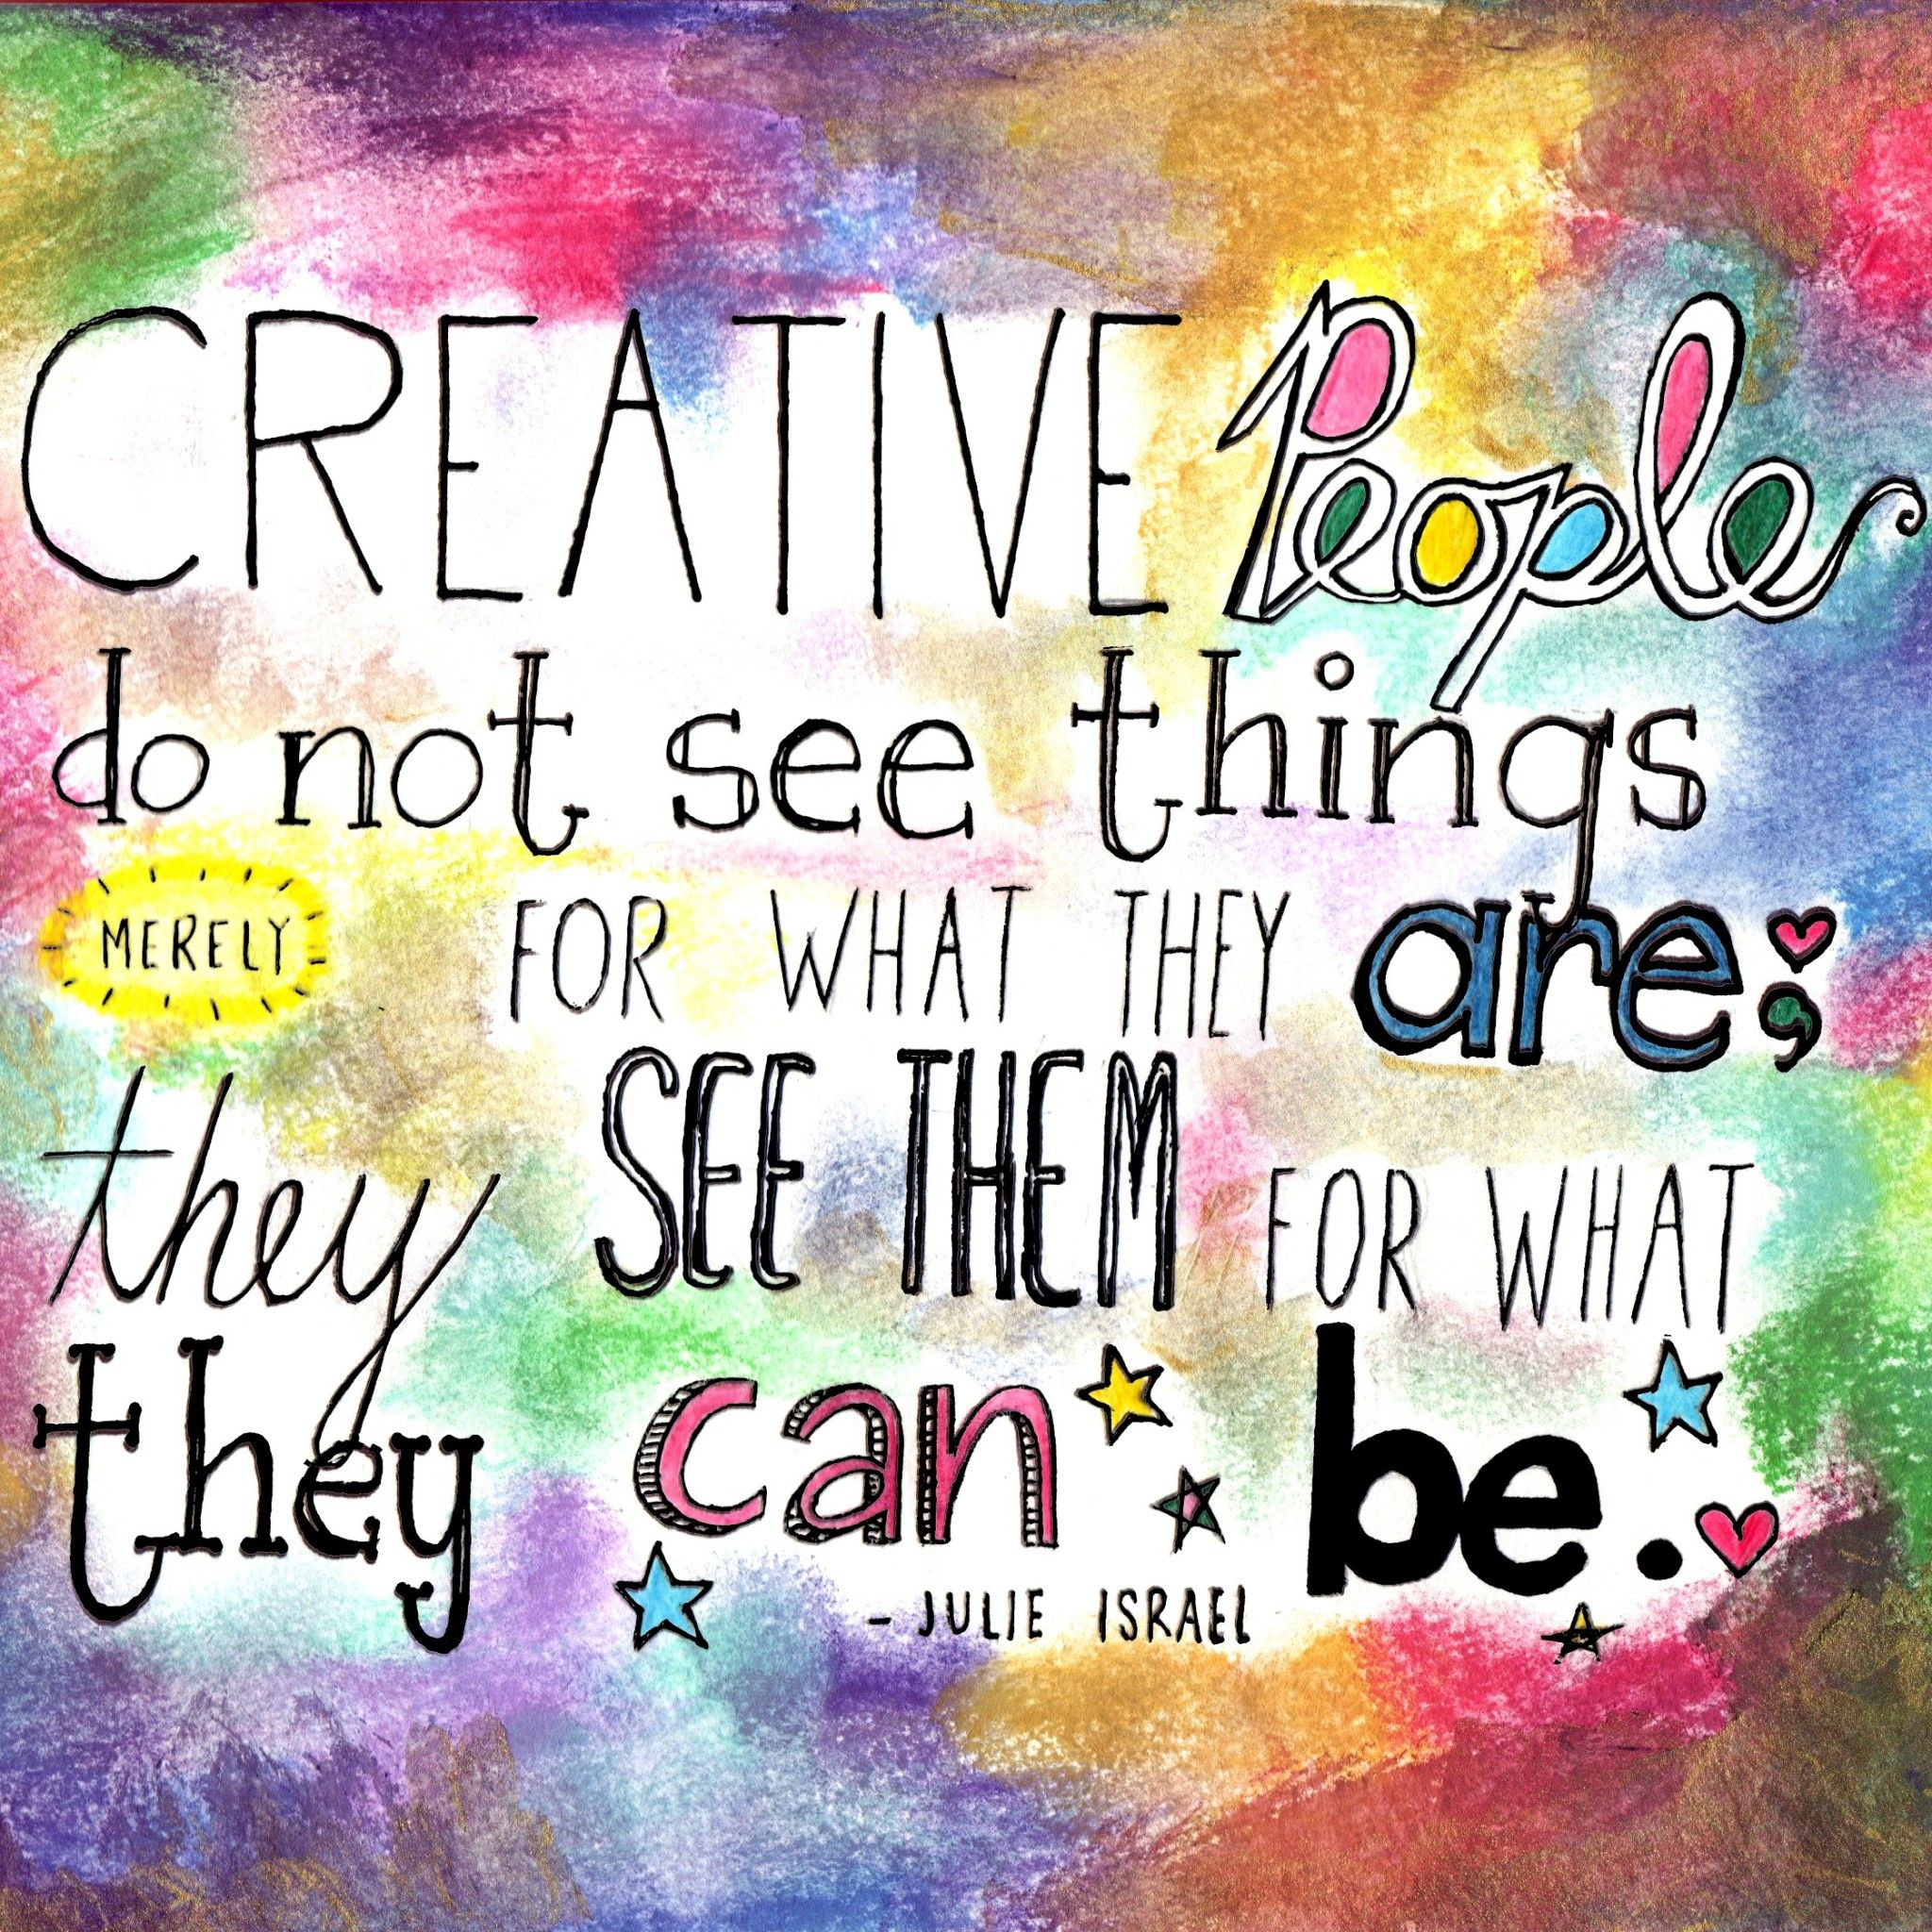 Creativity Quotes Wallpaper | www.imgkid.com - The Image ...